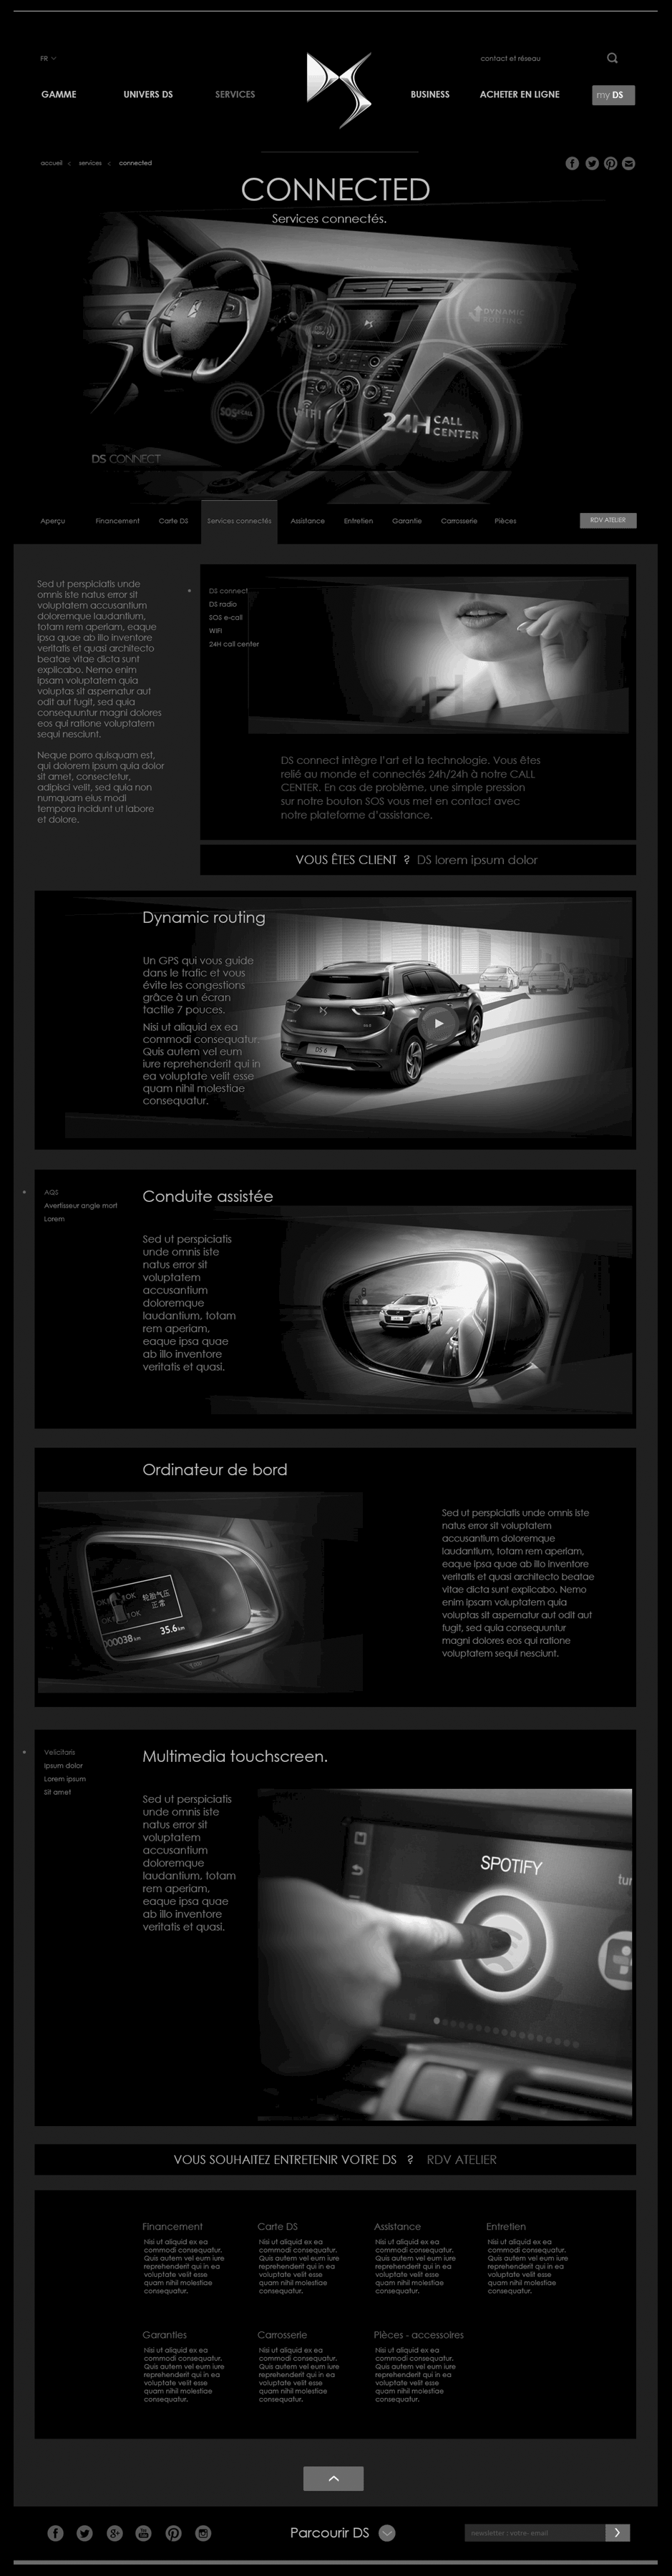 wireframe configurateur ds